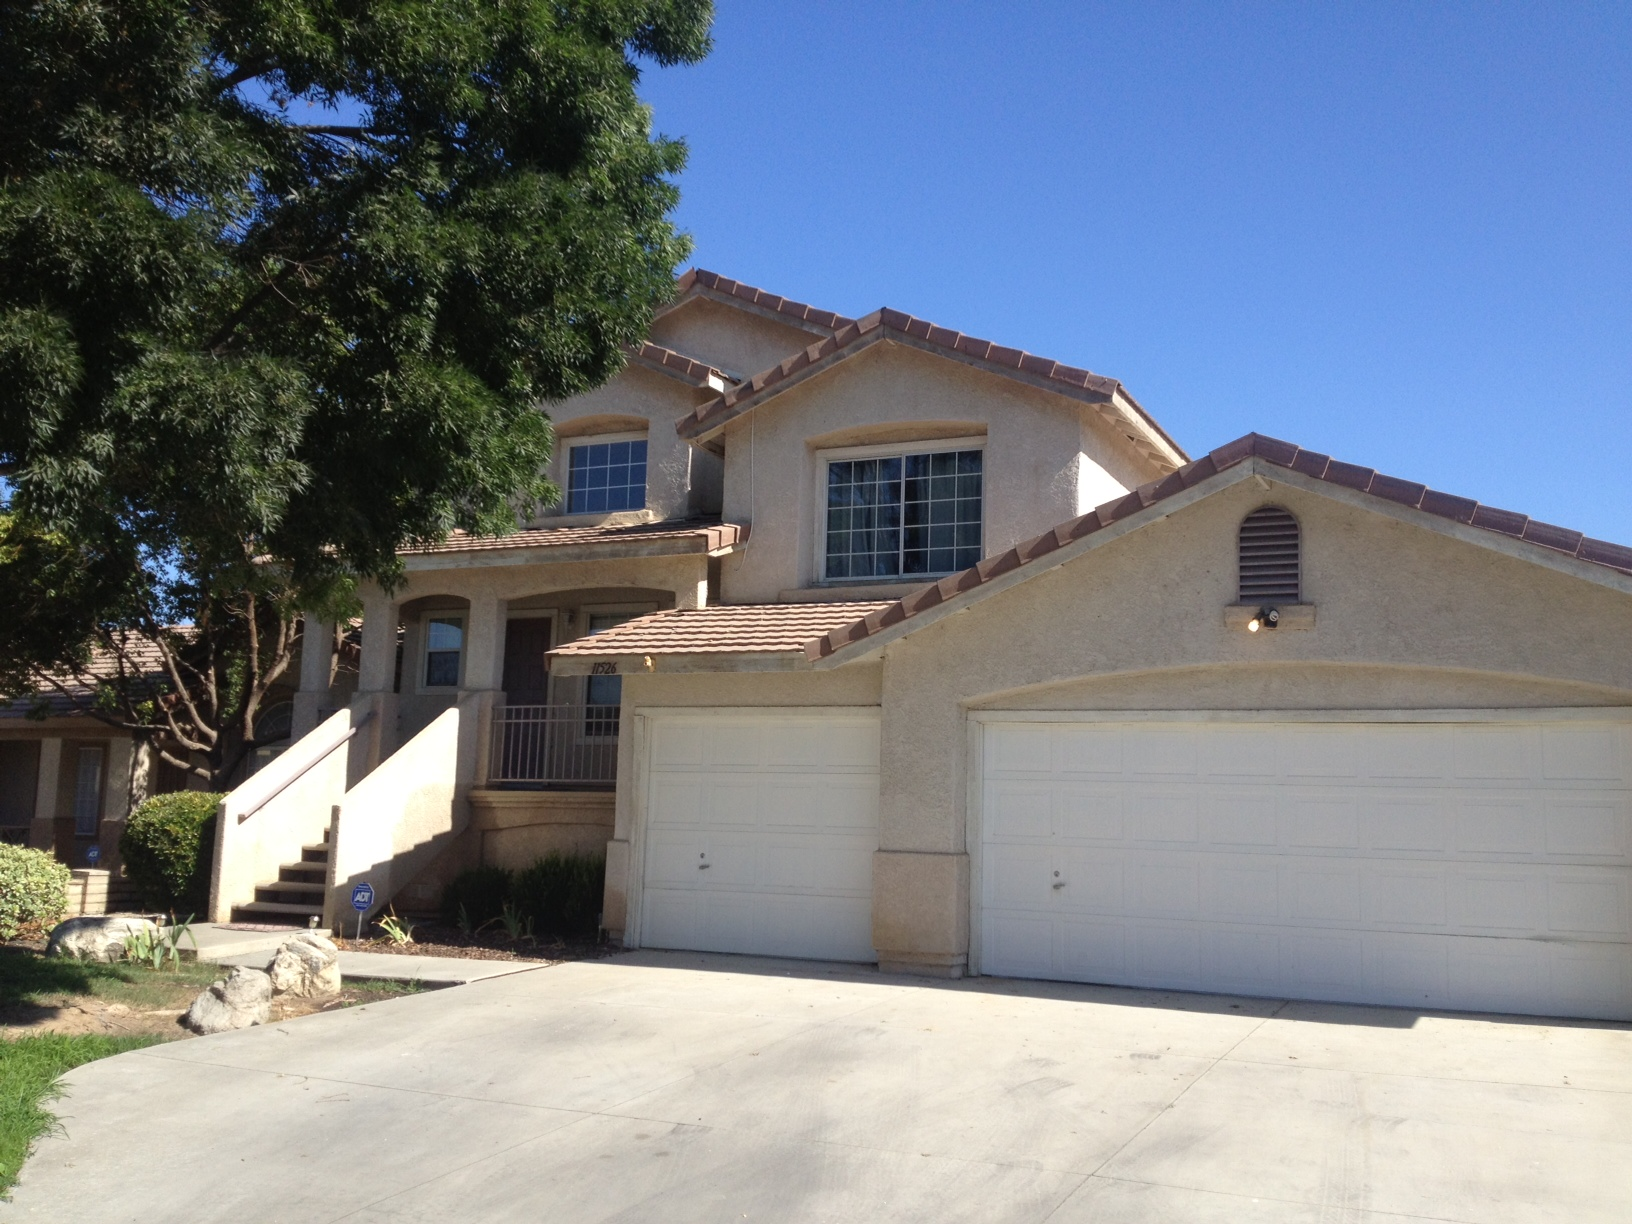 $1495 – 11526 Wrangler Dr., Bakersfield, CA 93312 RENTED northwest house